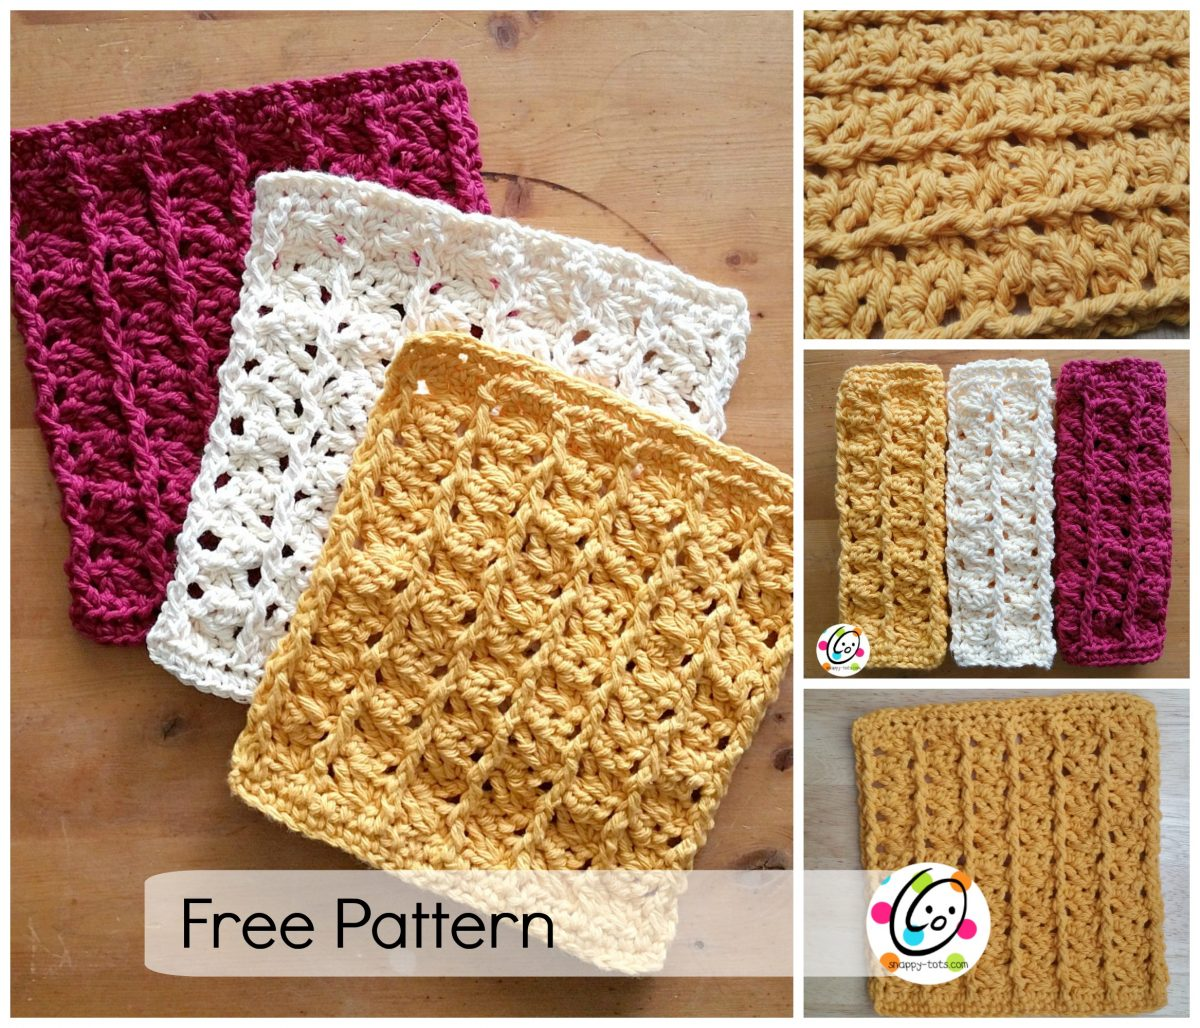 Pattern: Scrubbing Dishcloth